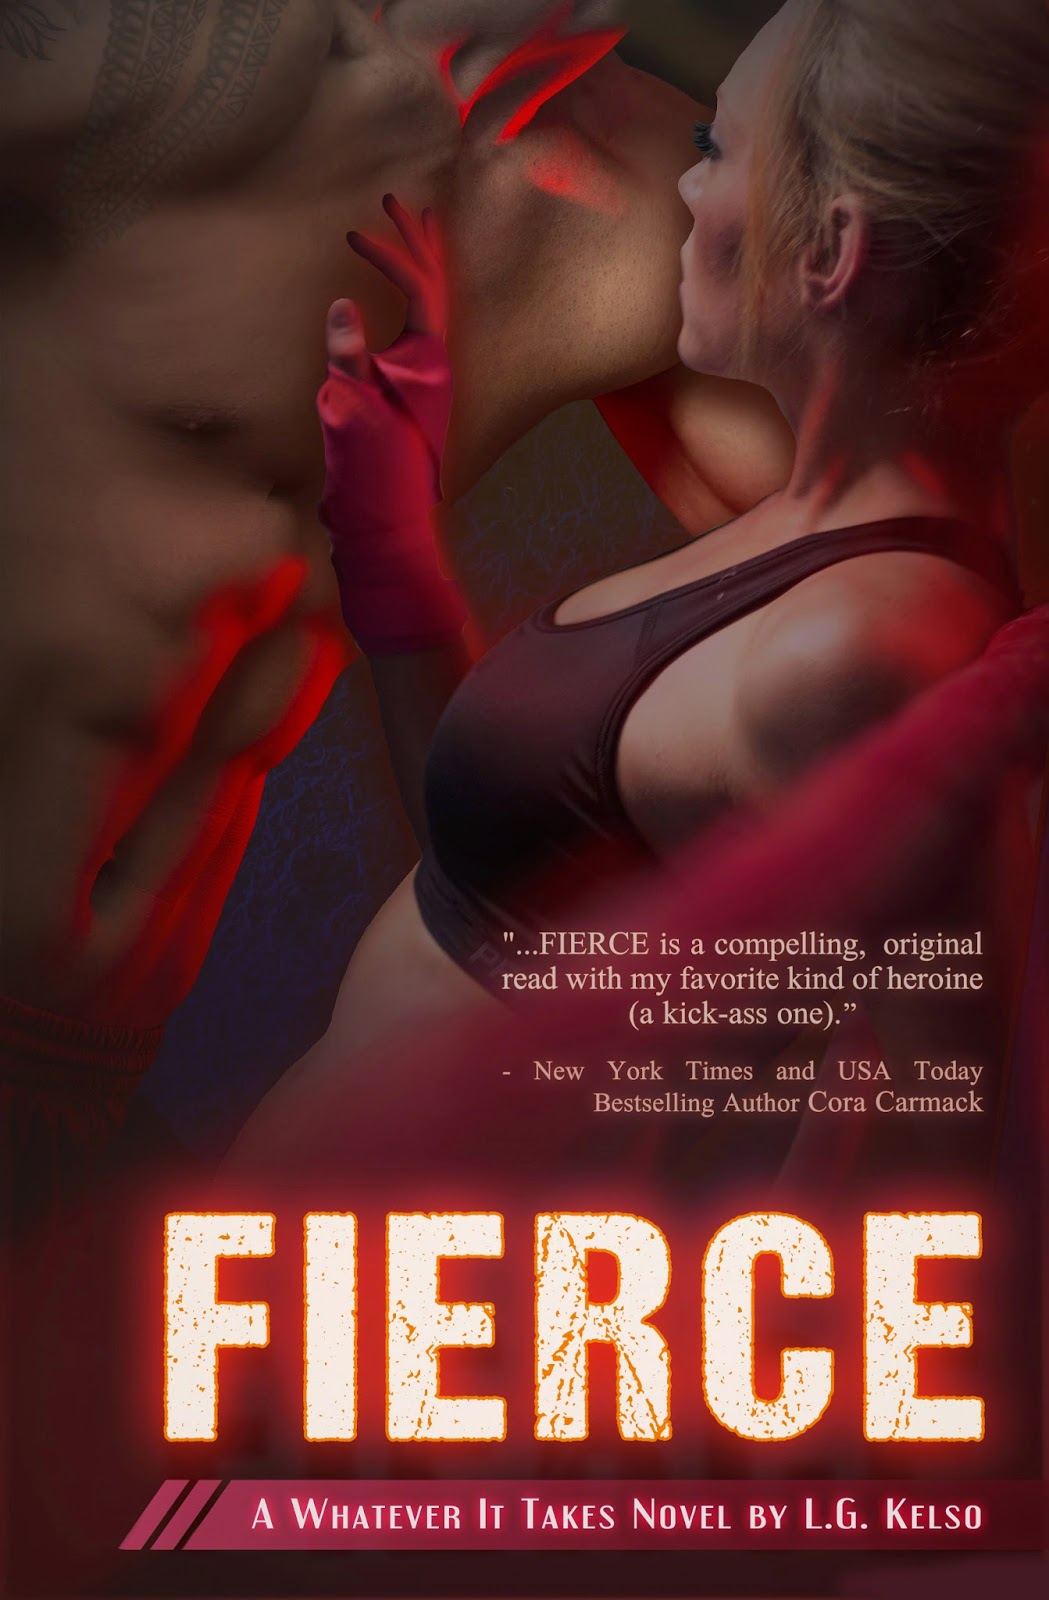 https://www.goodreads.com/book/show/22360301-fierce